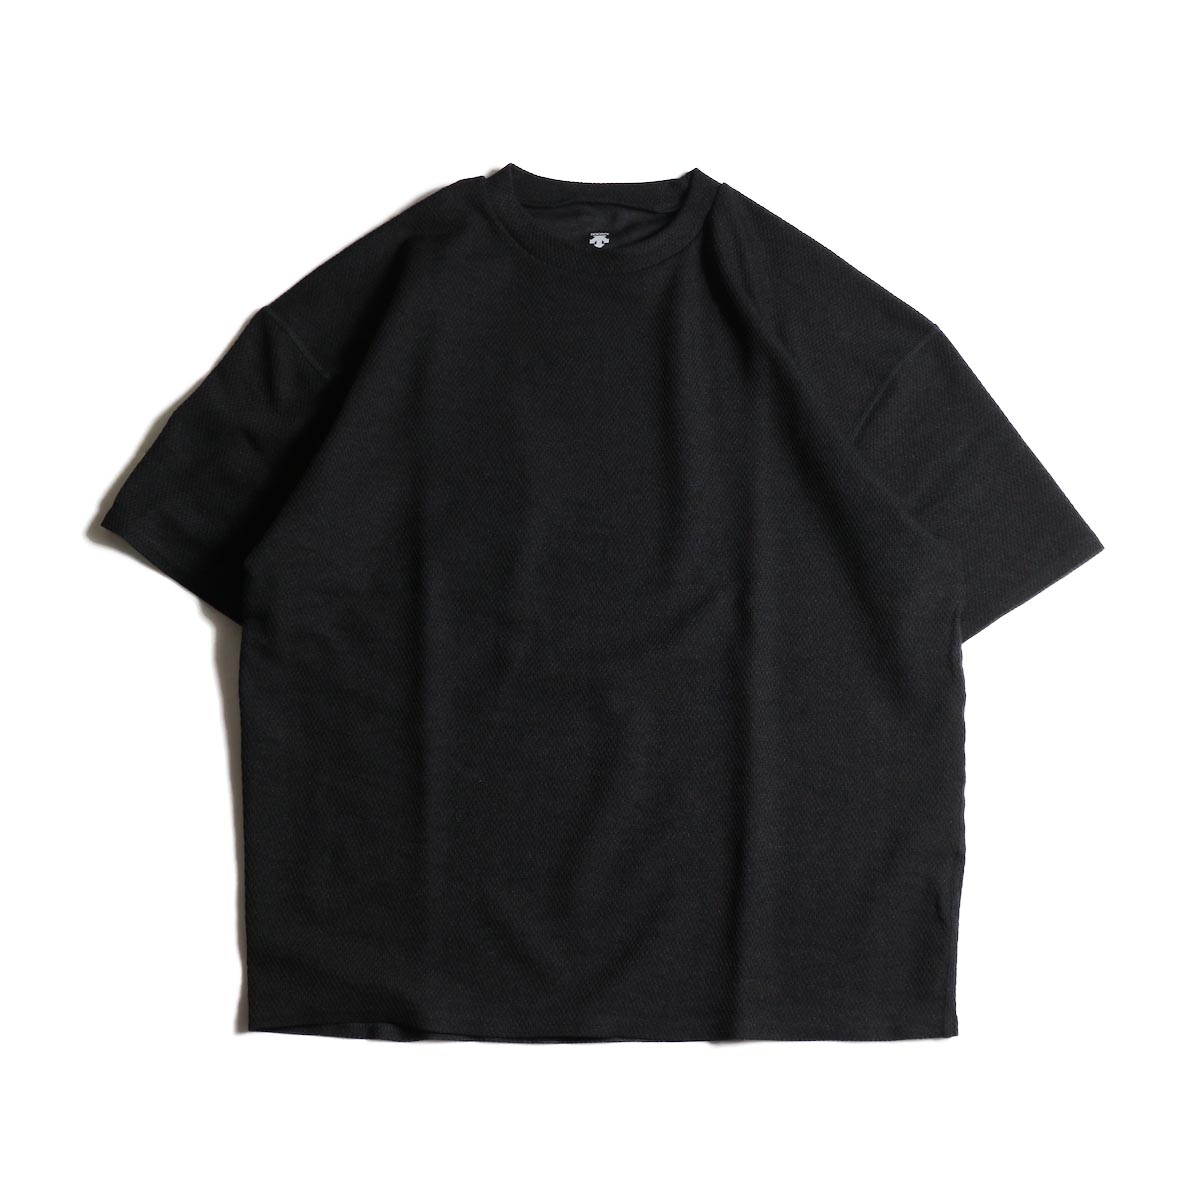 (Ladie's) DESCENTE PAUSE / THERMAL H/S T-SHIRT (BLACK)